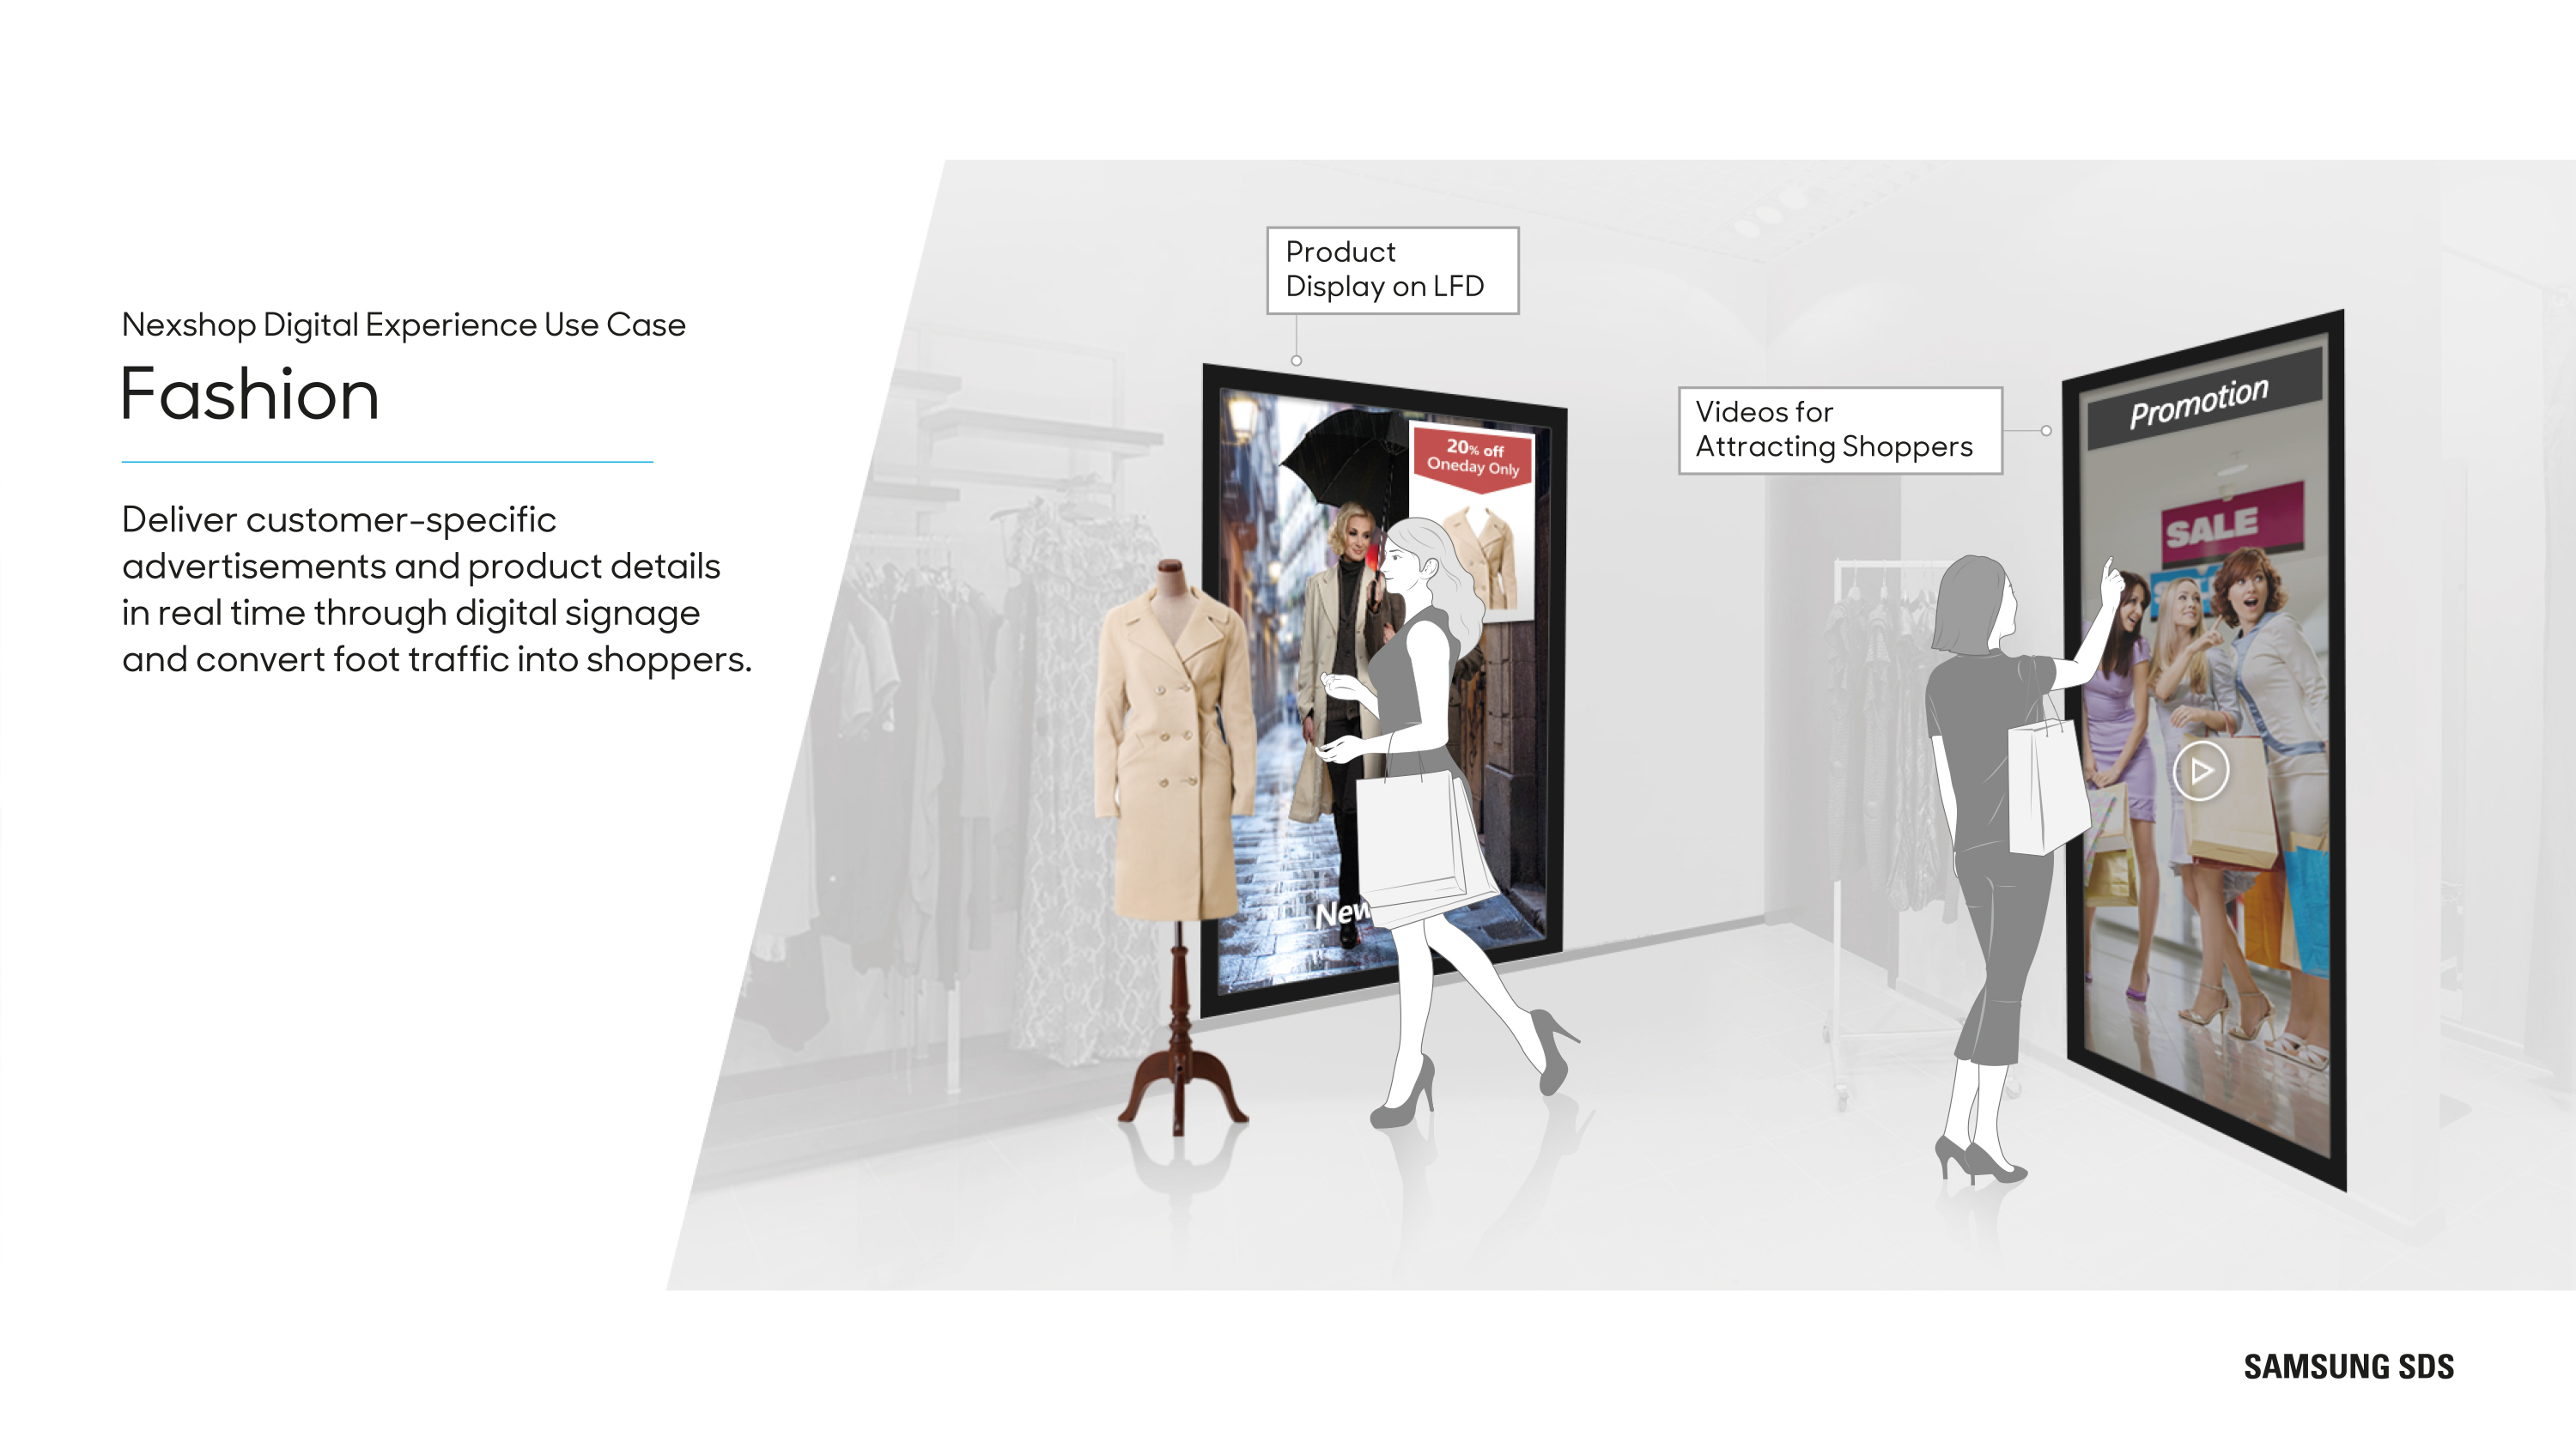 Deliver targeted advertisements and product details in real time through digital signage.